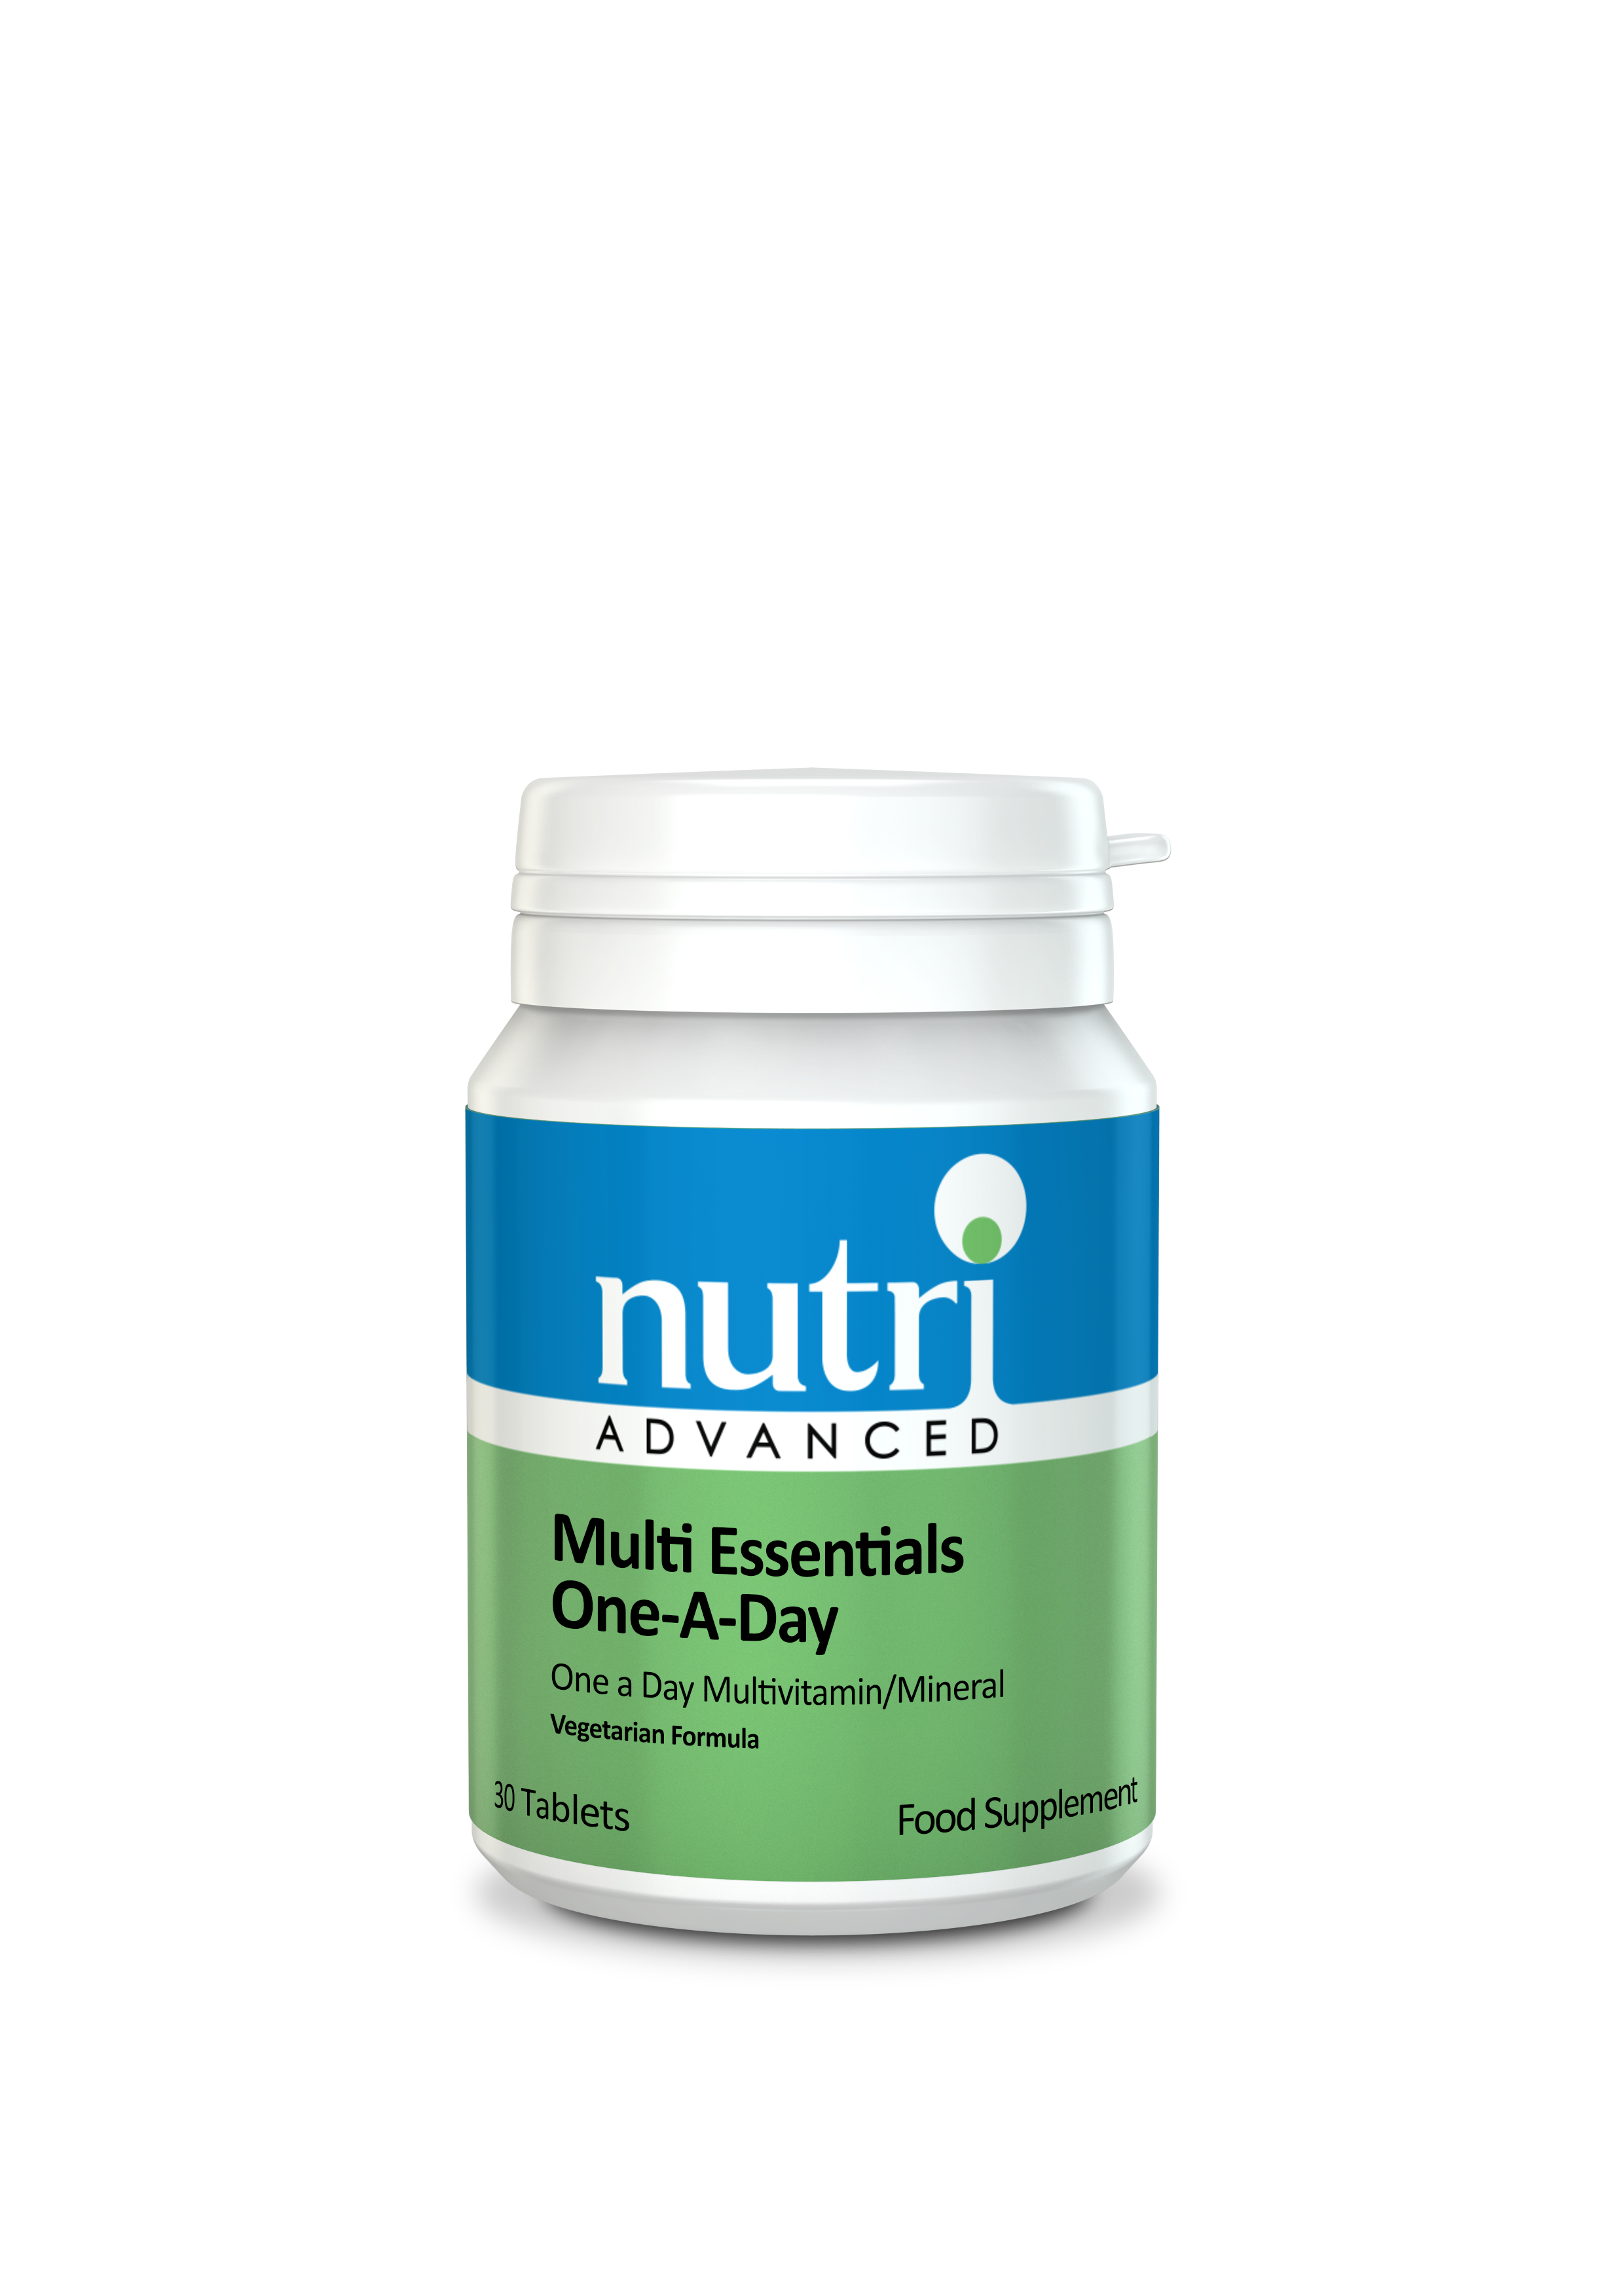 Nutri Advanced Multi Essentials One-A-Day tabs